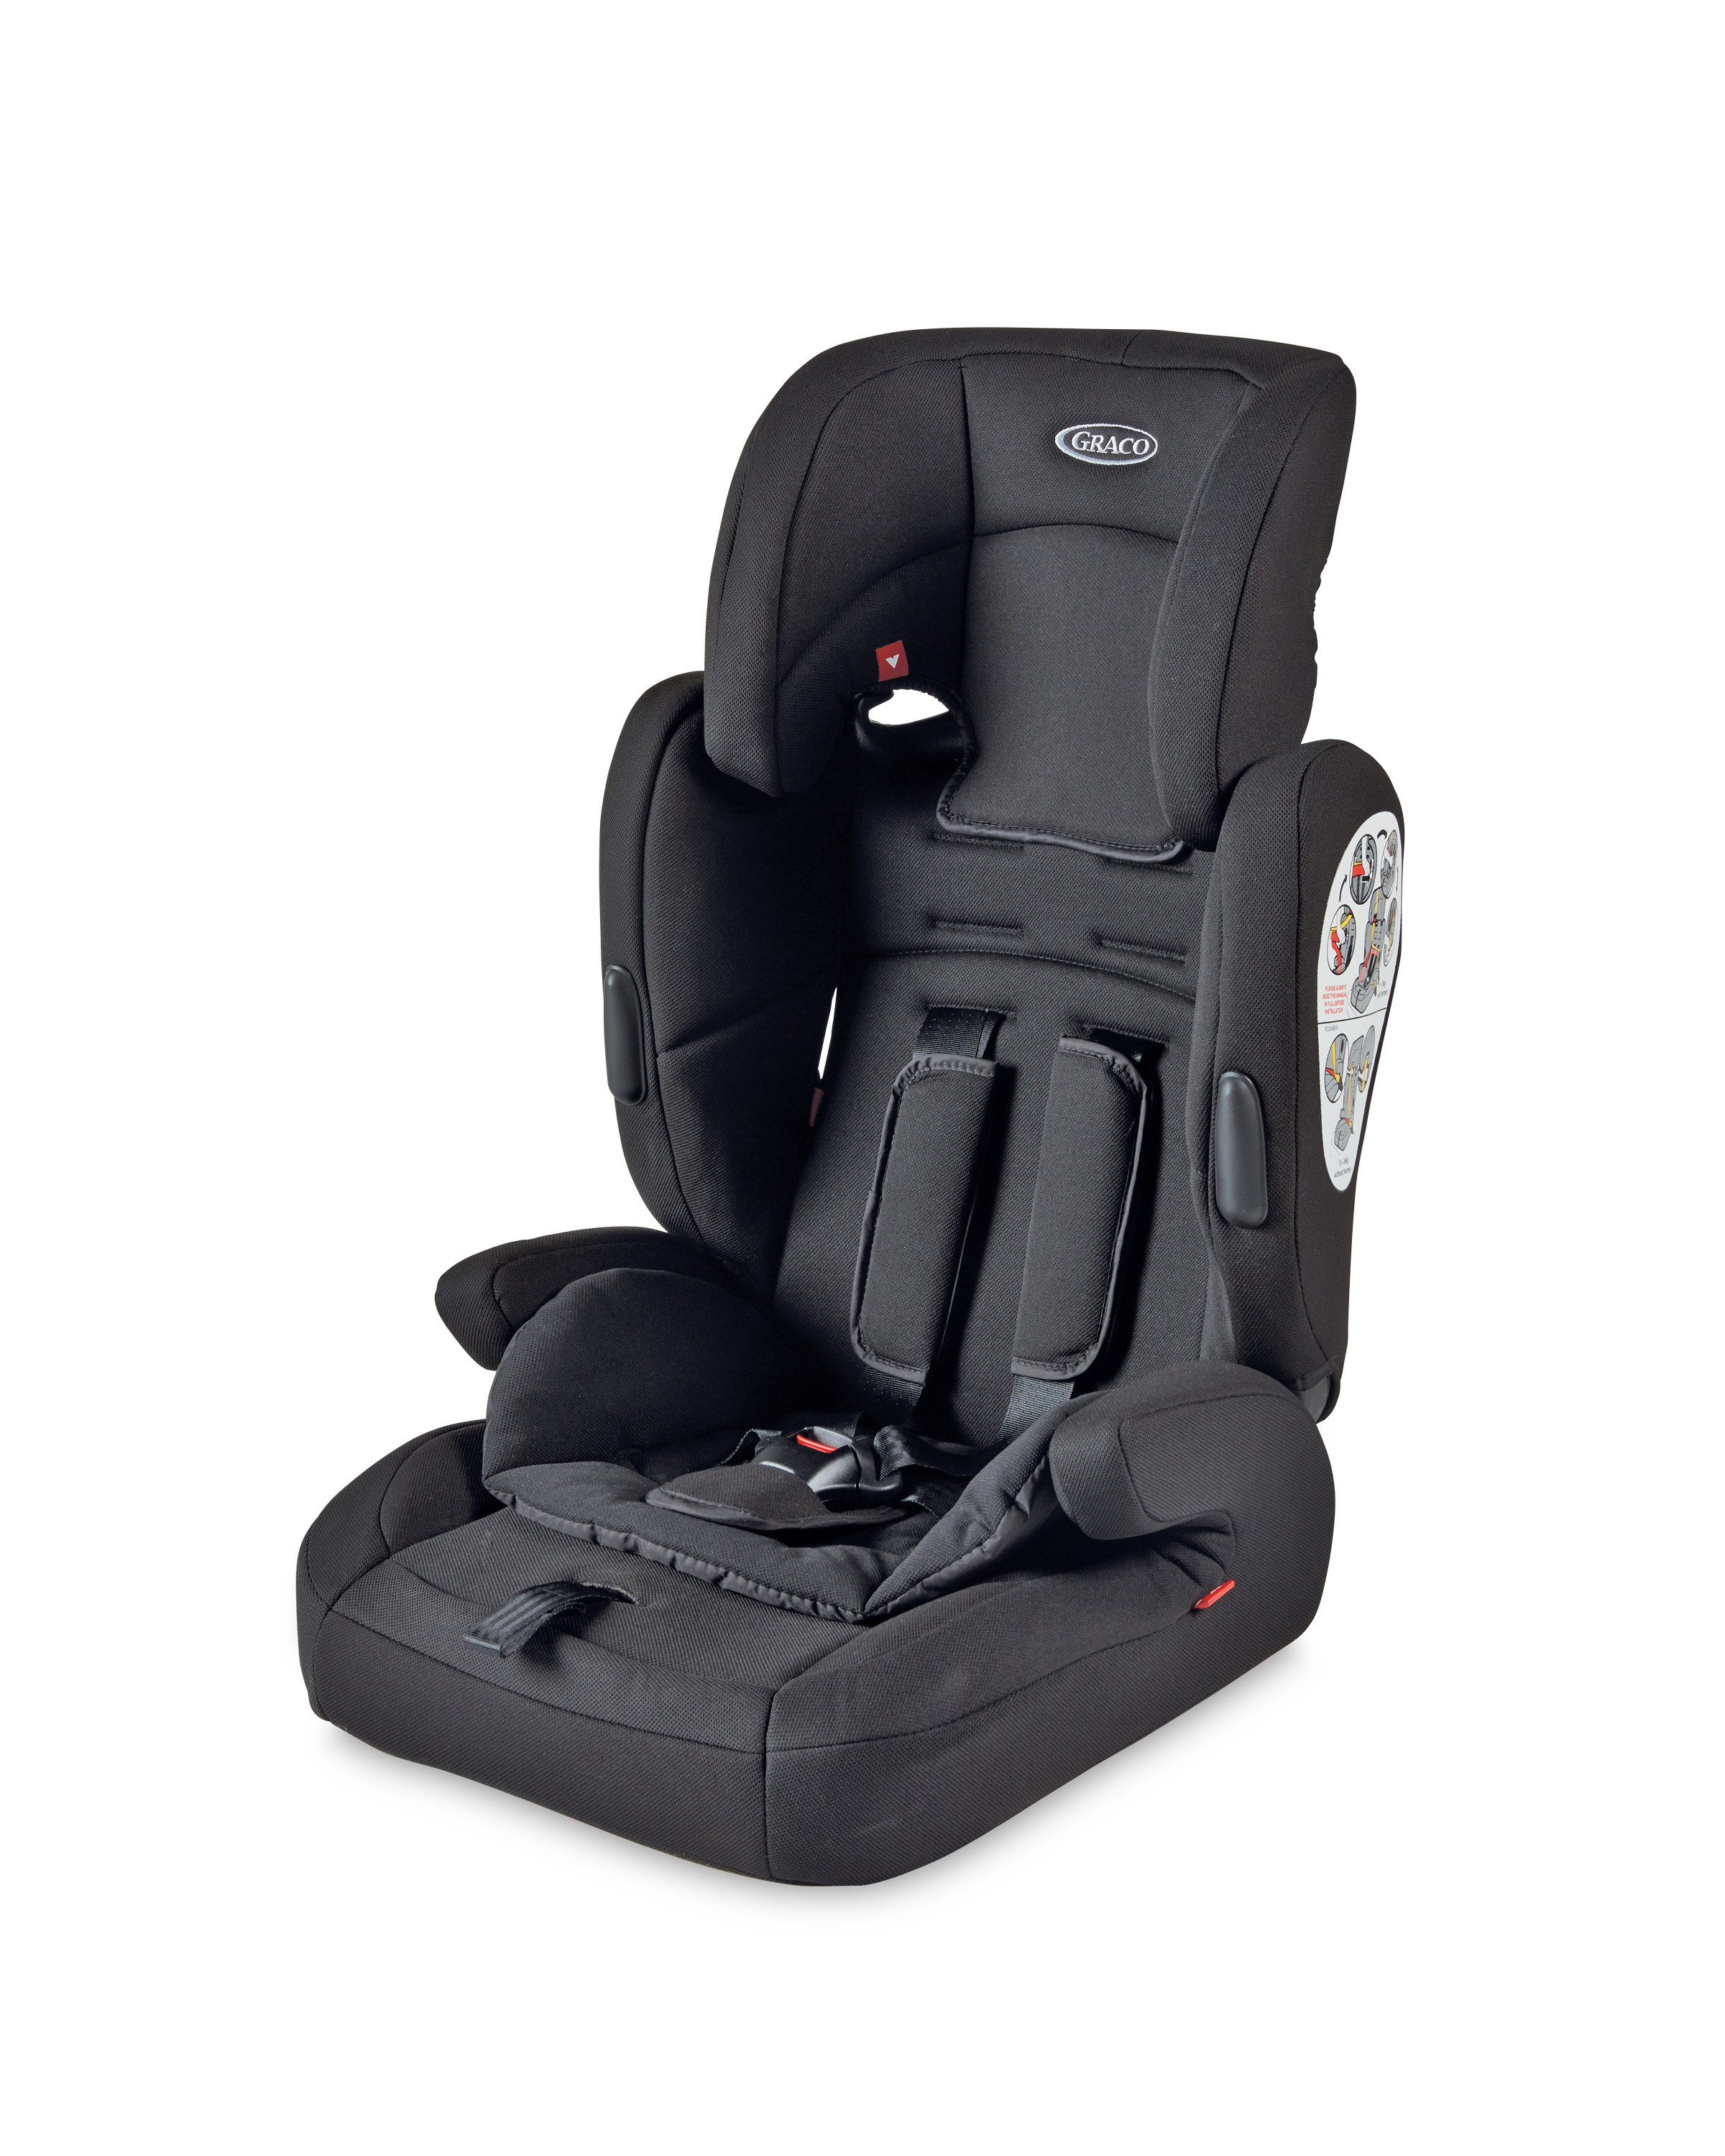 3faaf2f56fc3 Graco Endure Child Car Seat - ALDI UK